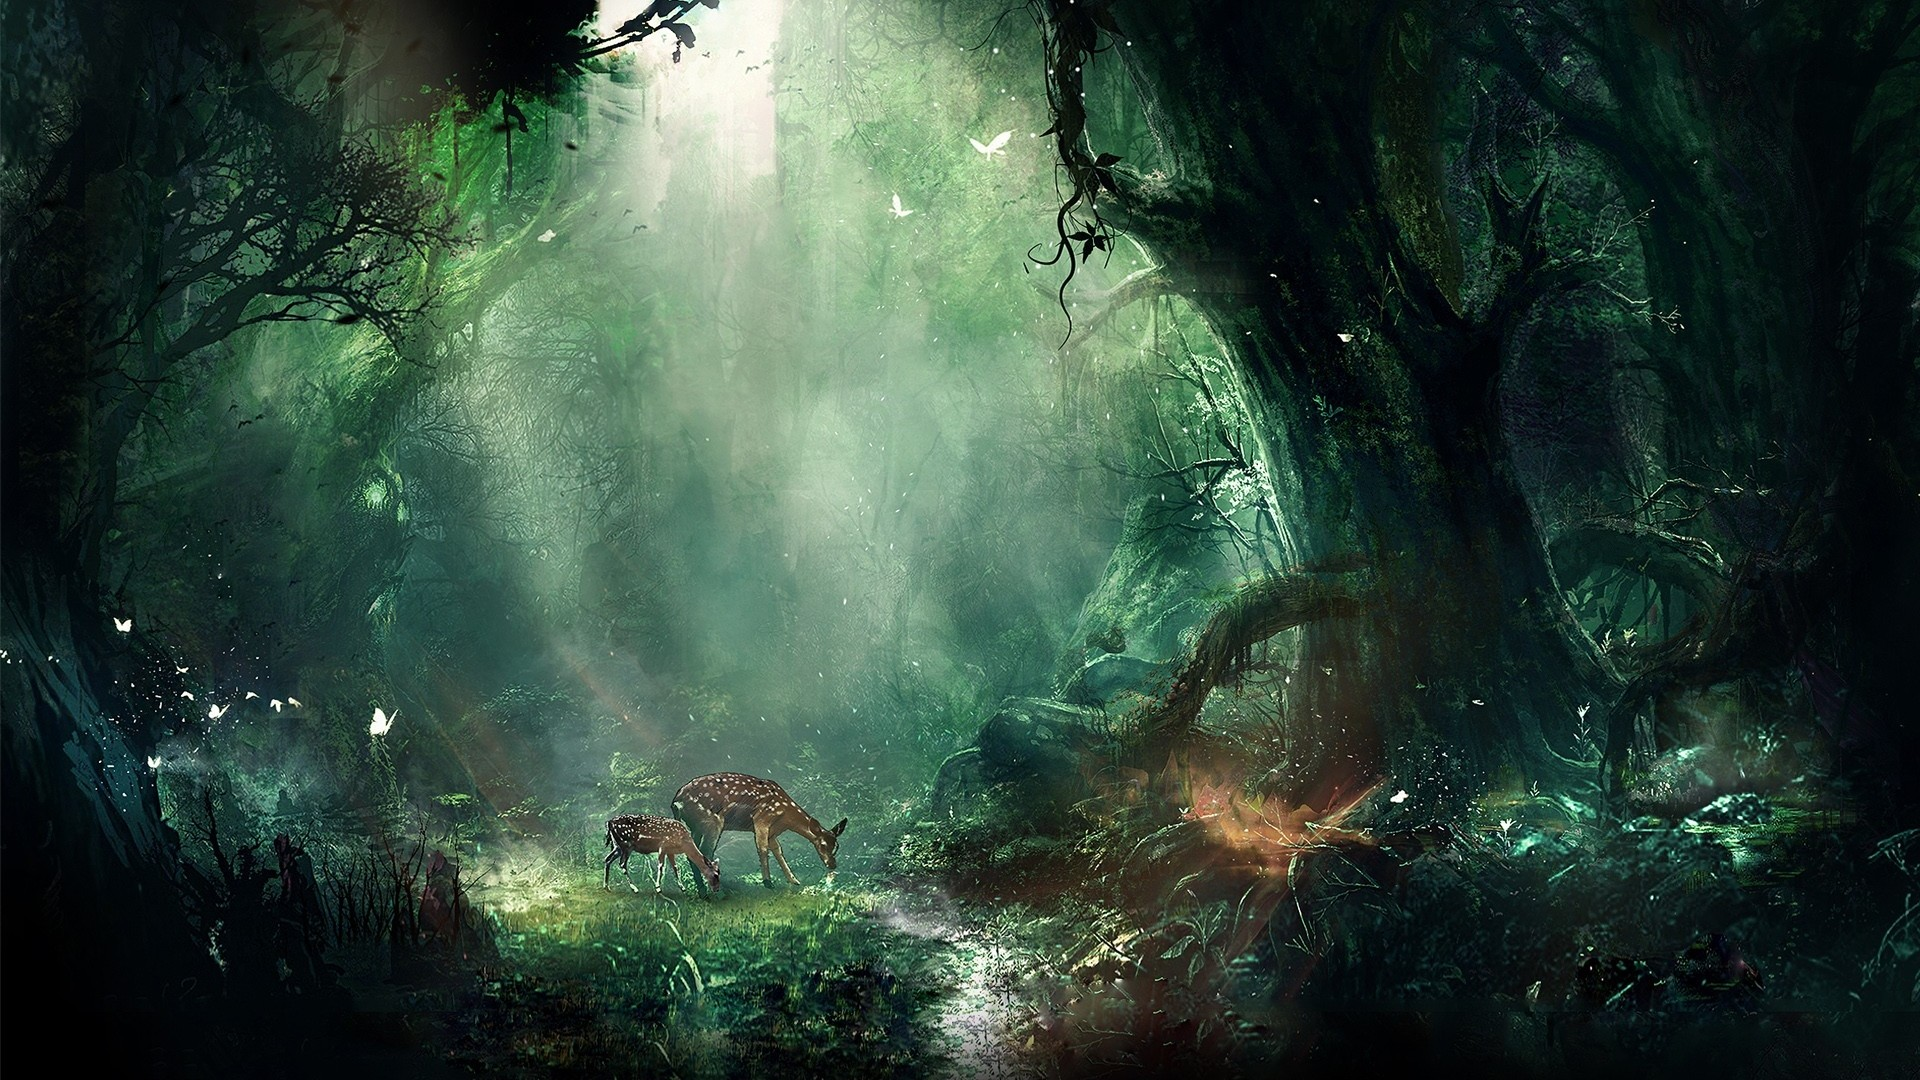 hd fantasy wallpapers 1080p (73+ images)